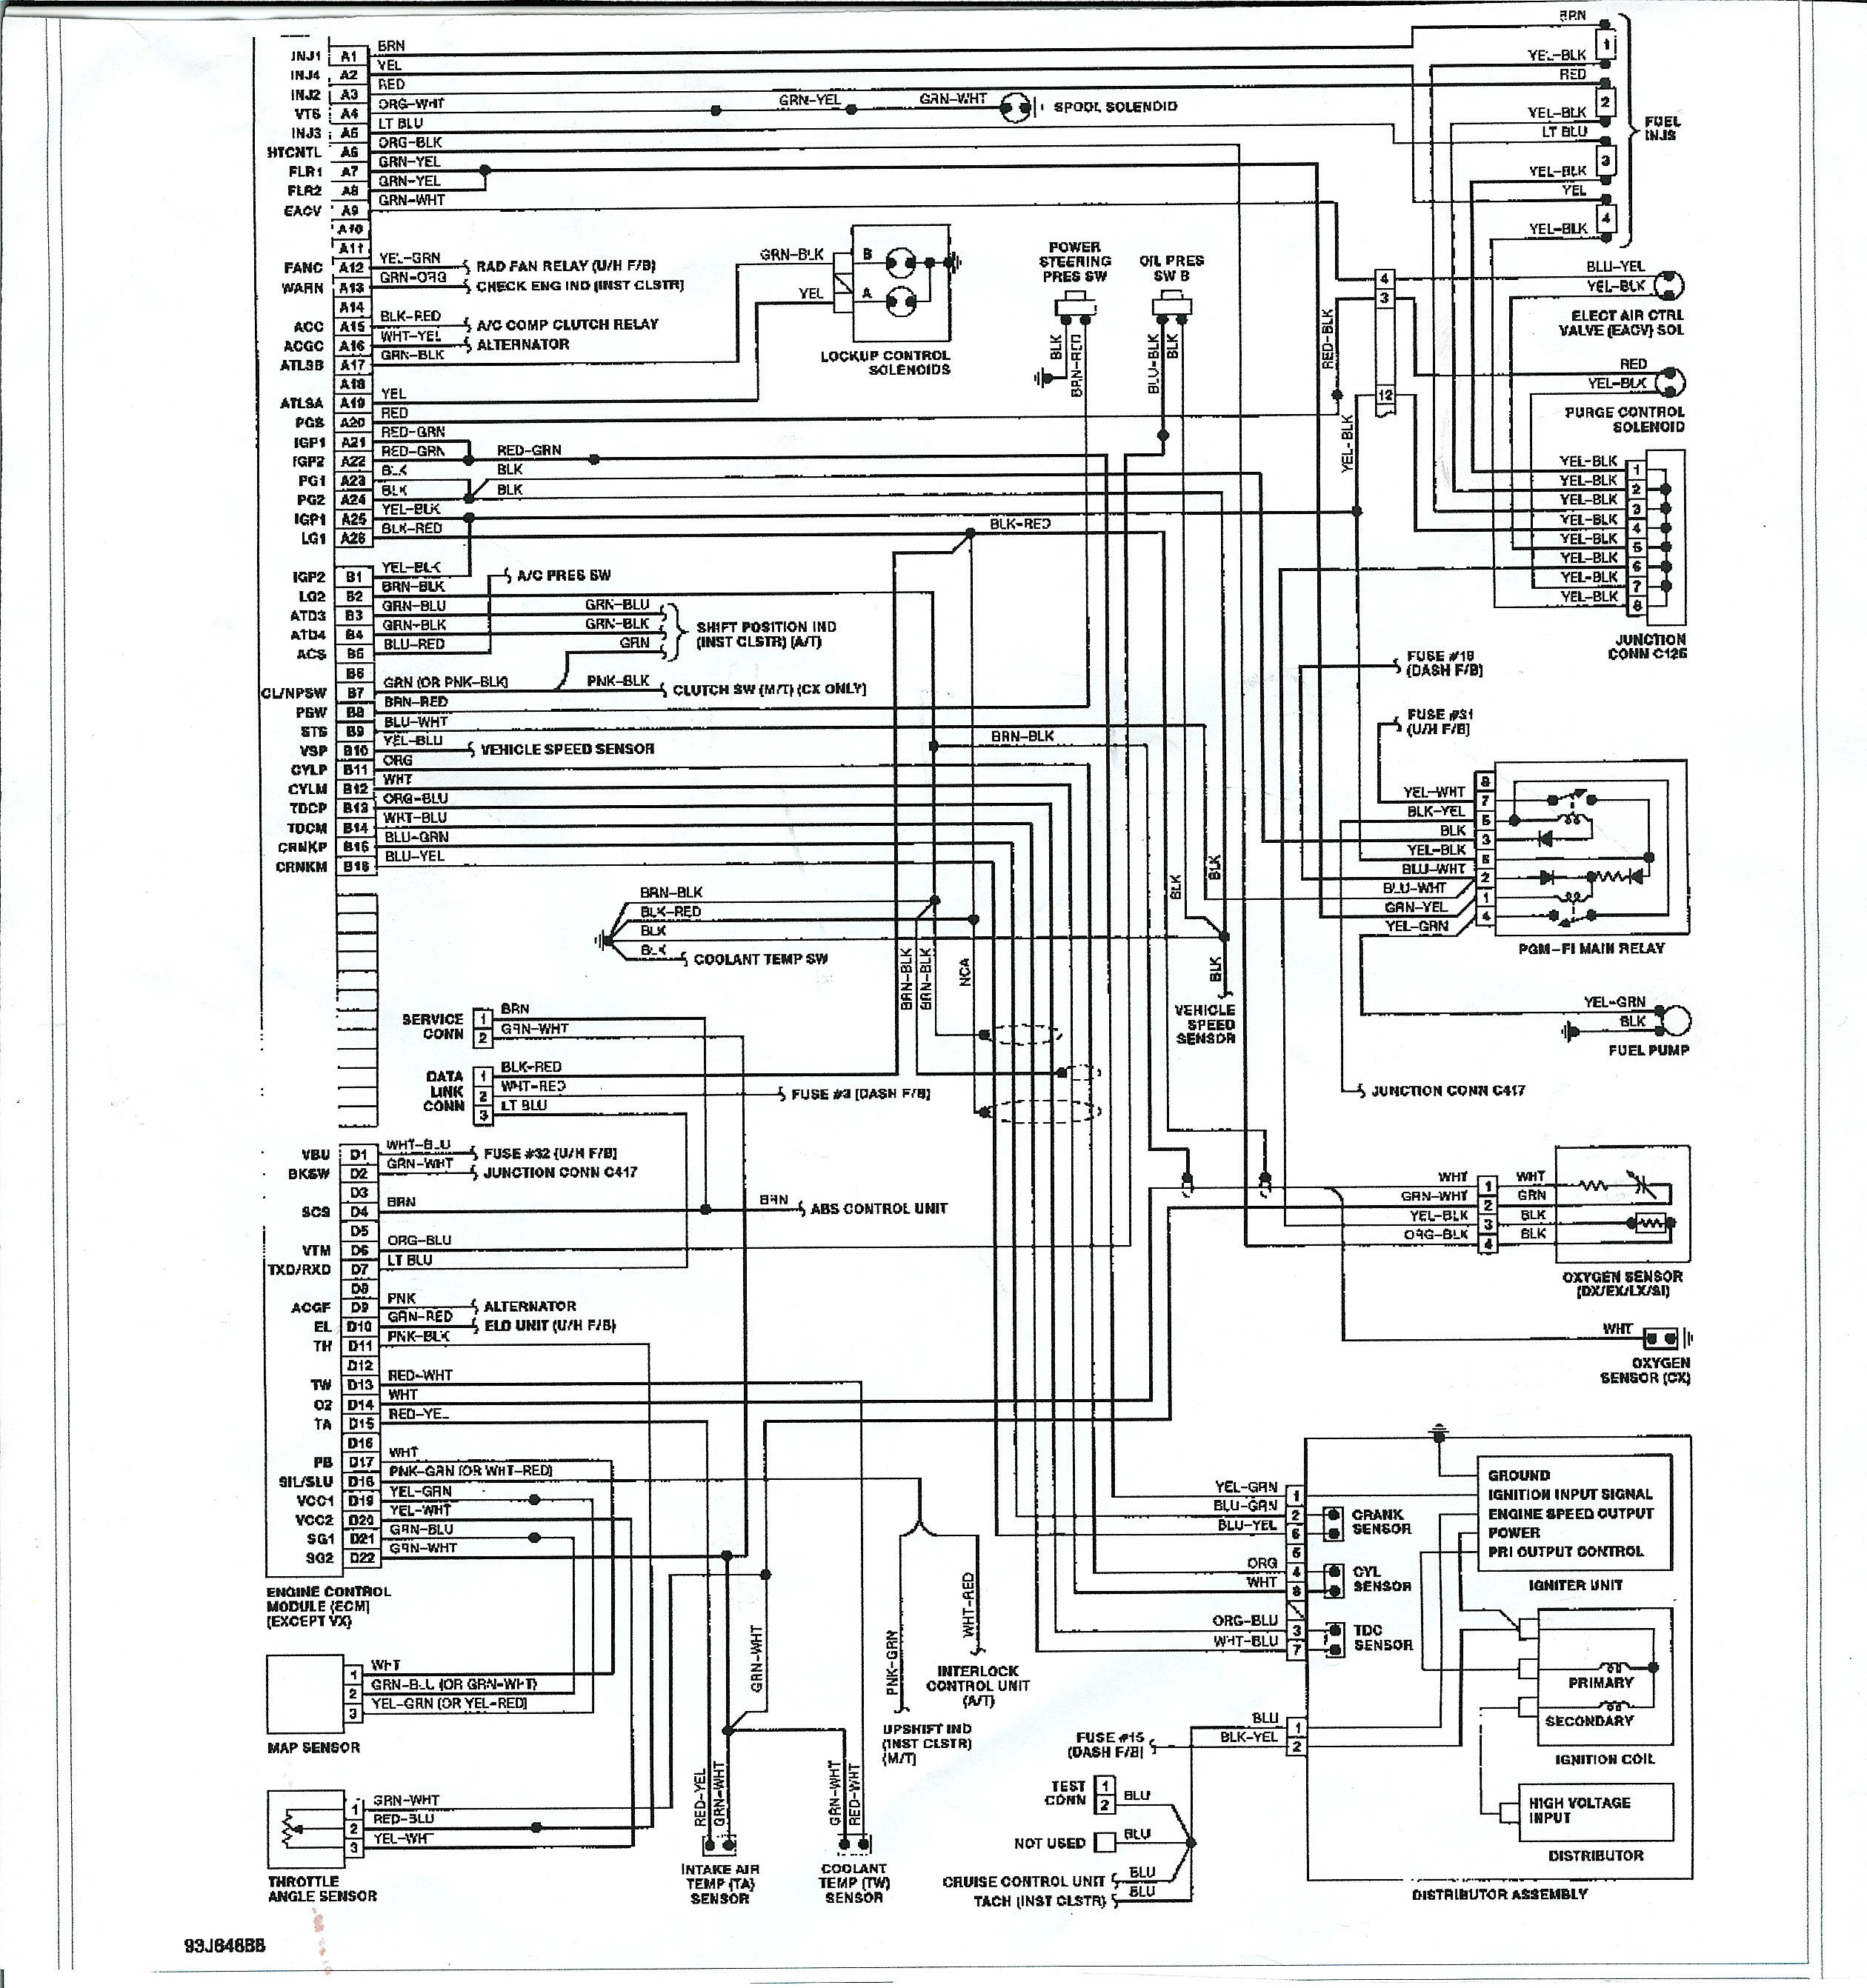 1990 Honda Civic Engine Diagram My Wiring 4runner Unusual 1995 Toyota Gallery Electrical Rh Eidetec